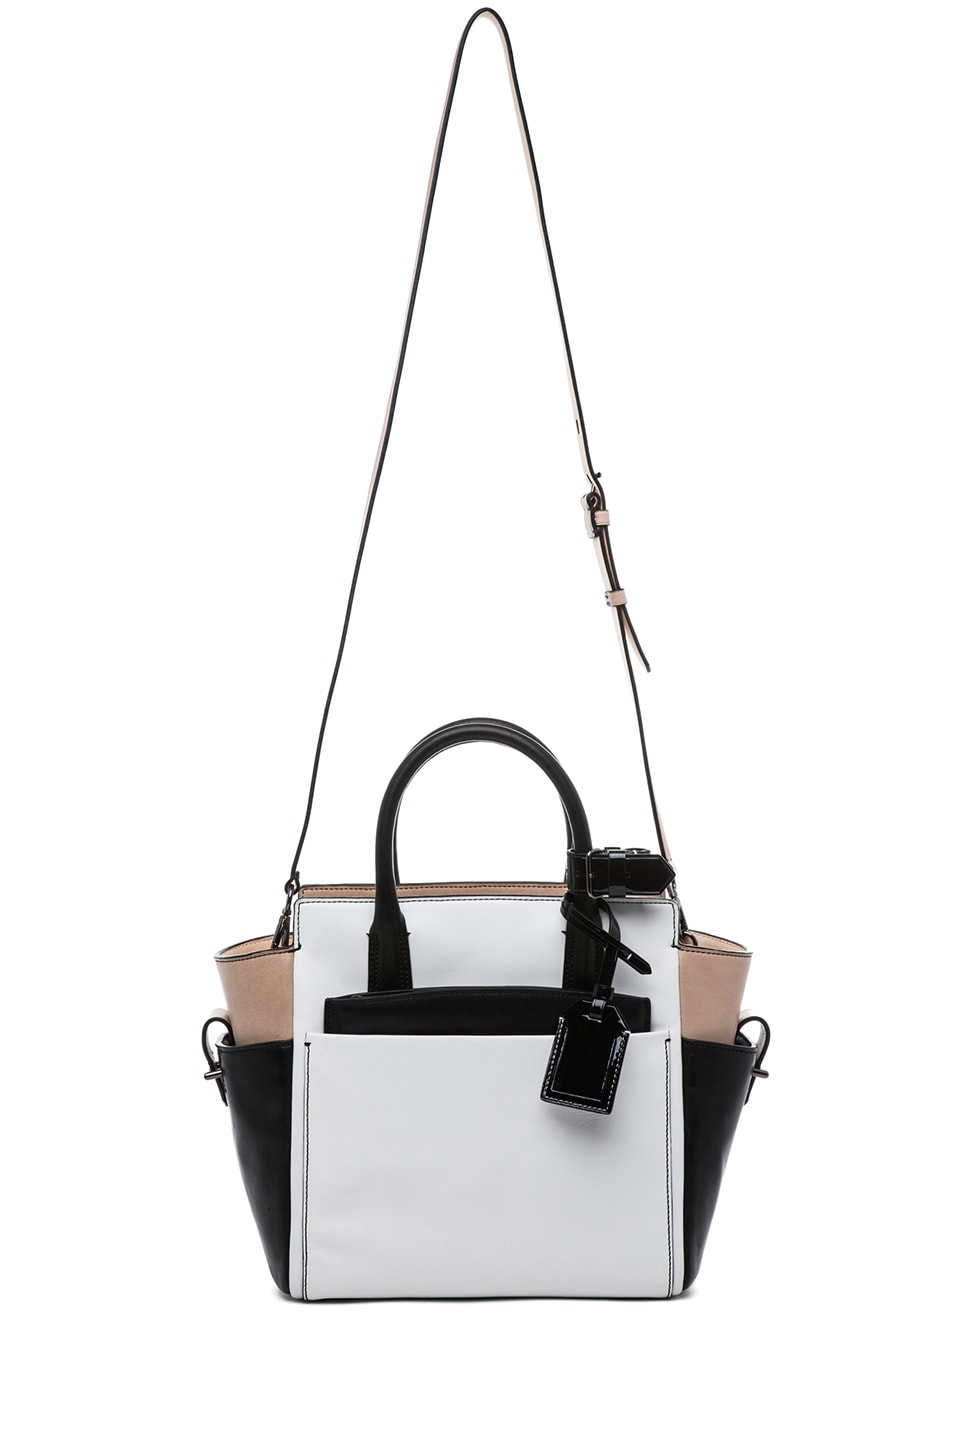 Image 8 of Reed Krakoff Patent Mini Atlantique in Nude Black